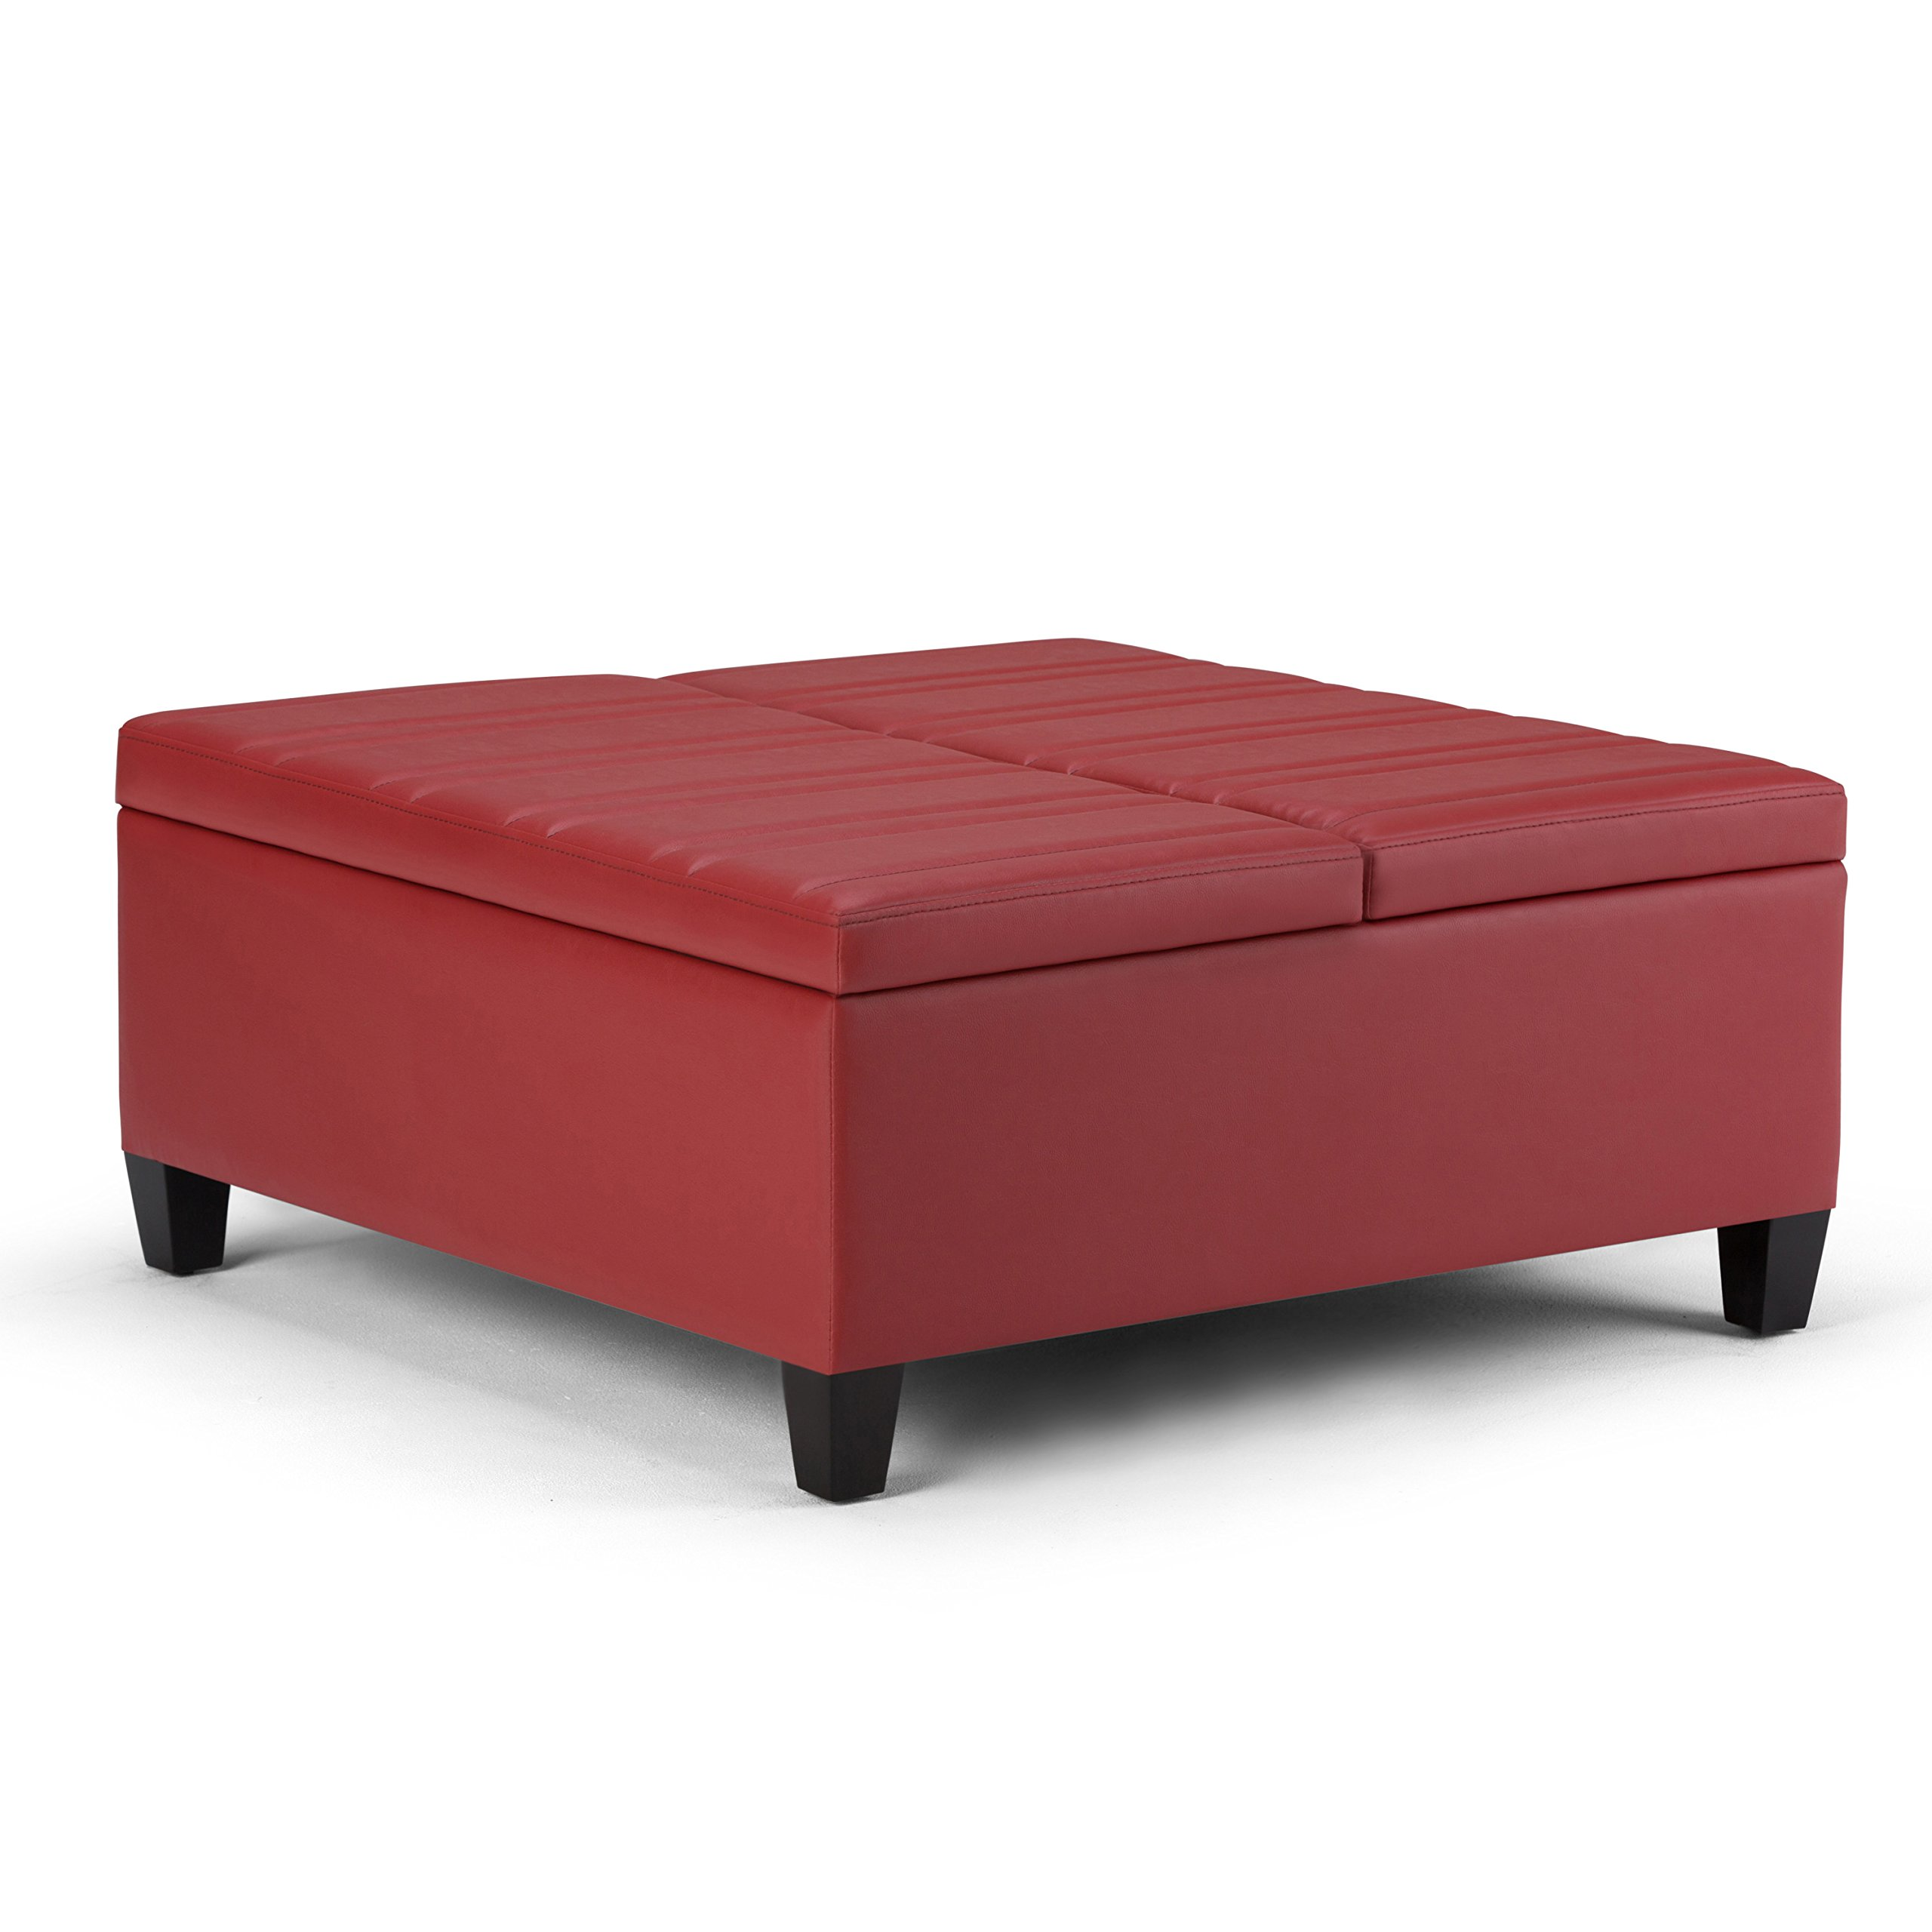 Simpli Home Ellis Coffee Table Storage Ottoman, Crimson Red